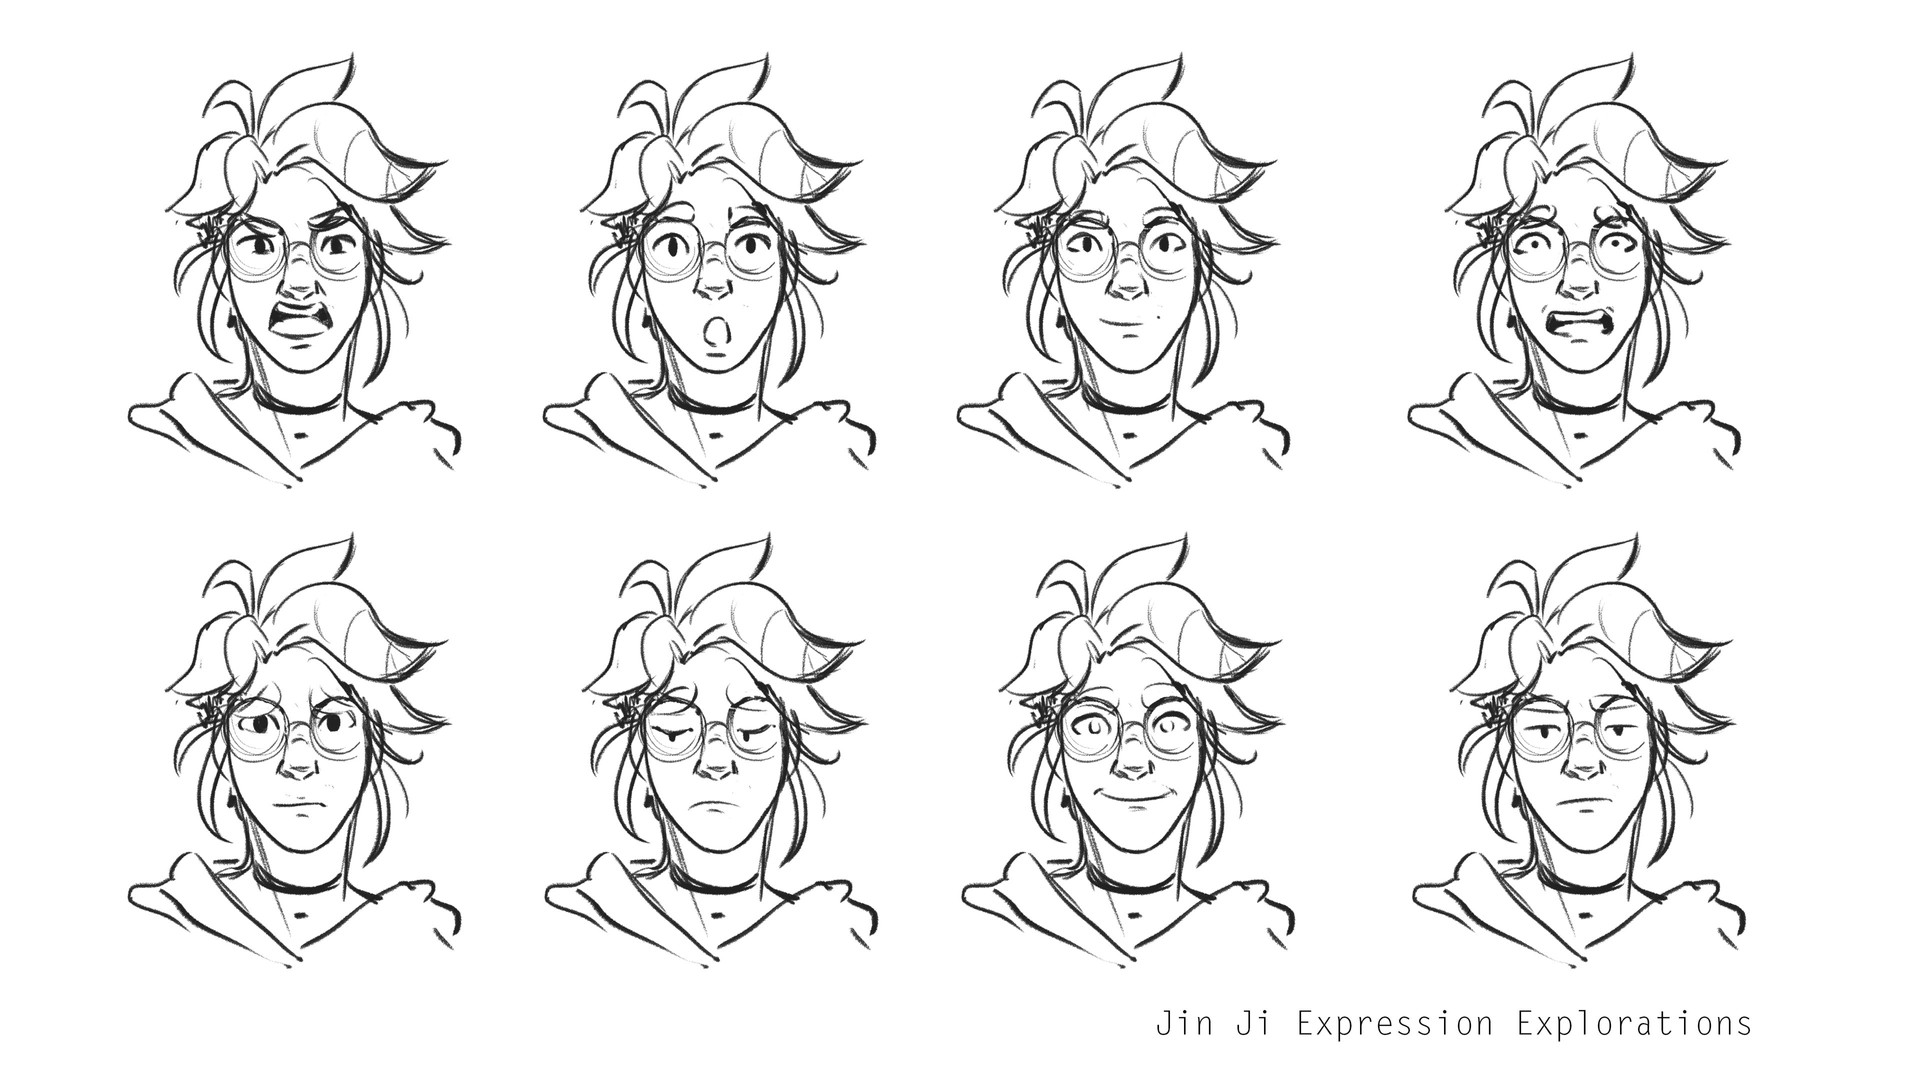 JinJi Expression Explorations